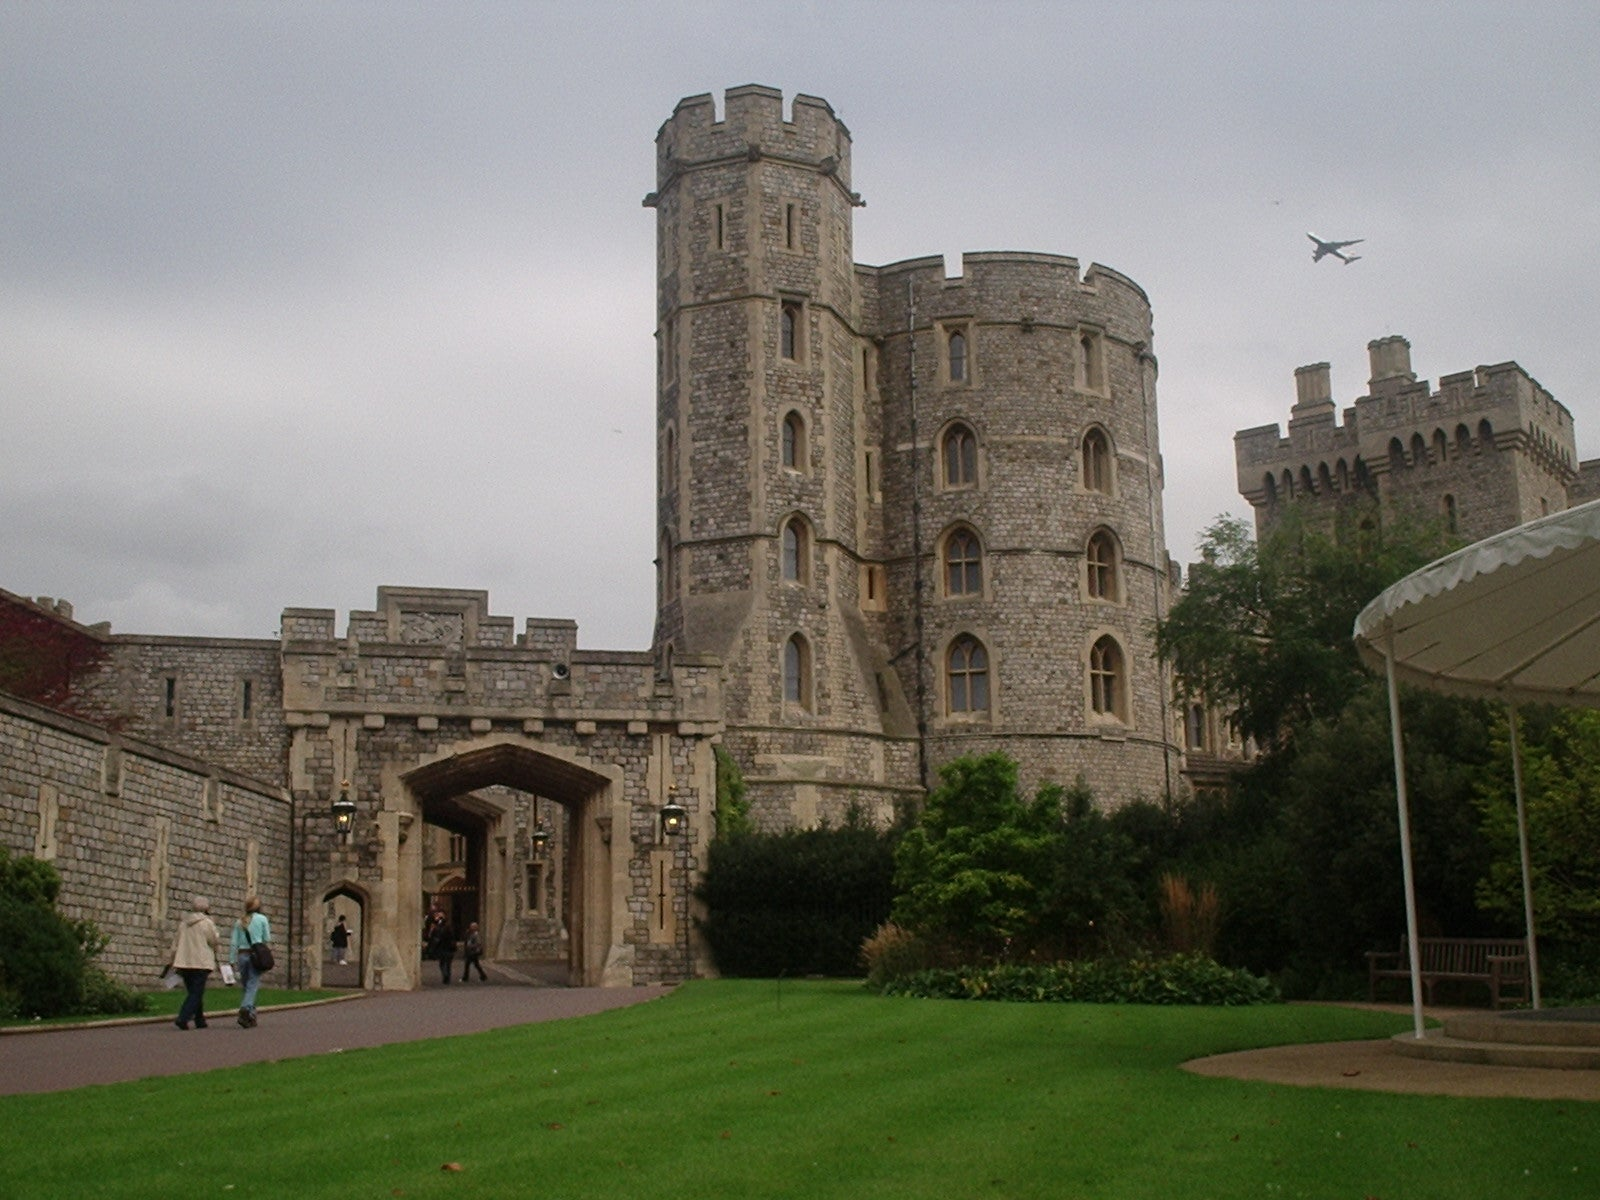 Historia antigua en Castillo de Windsor